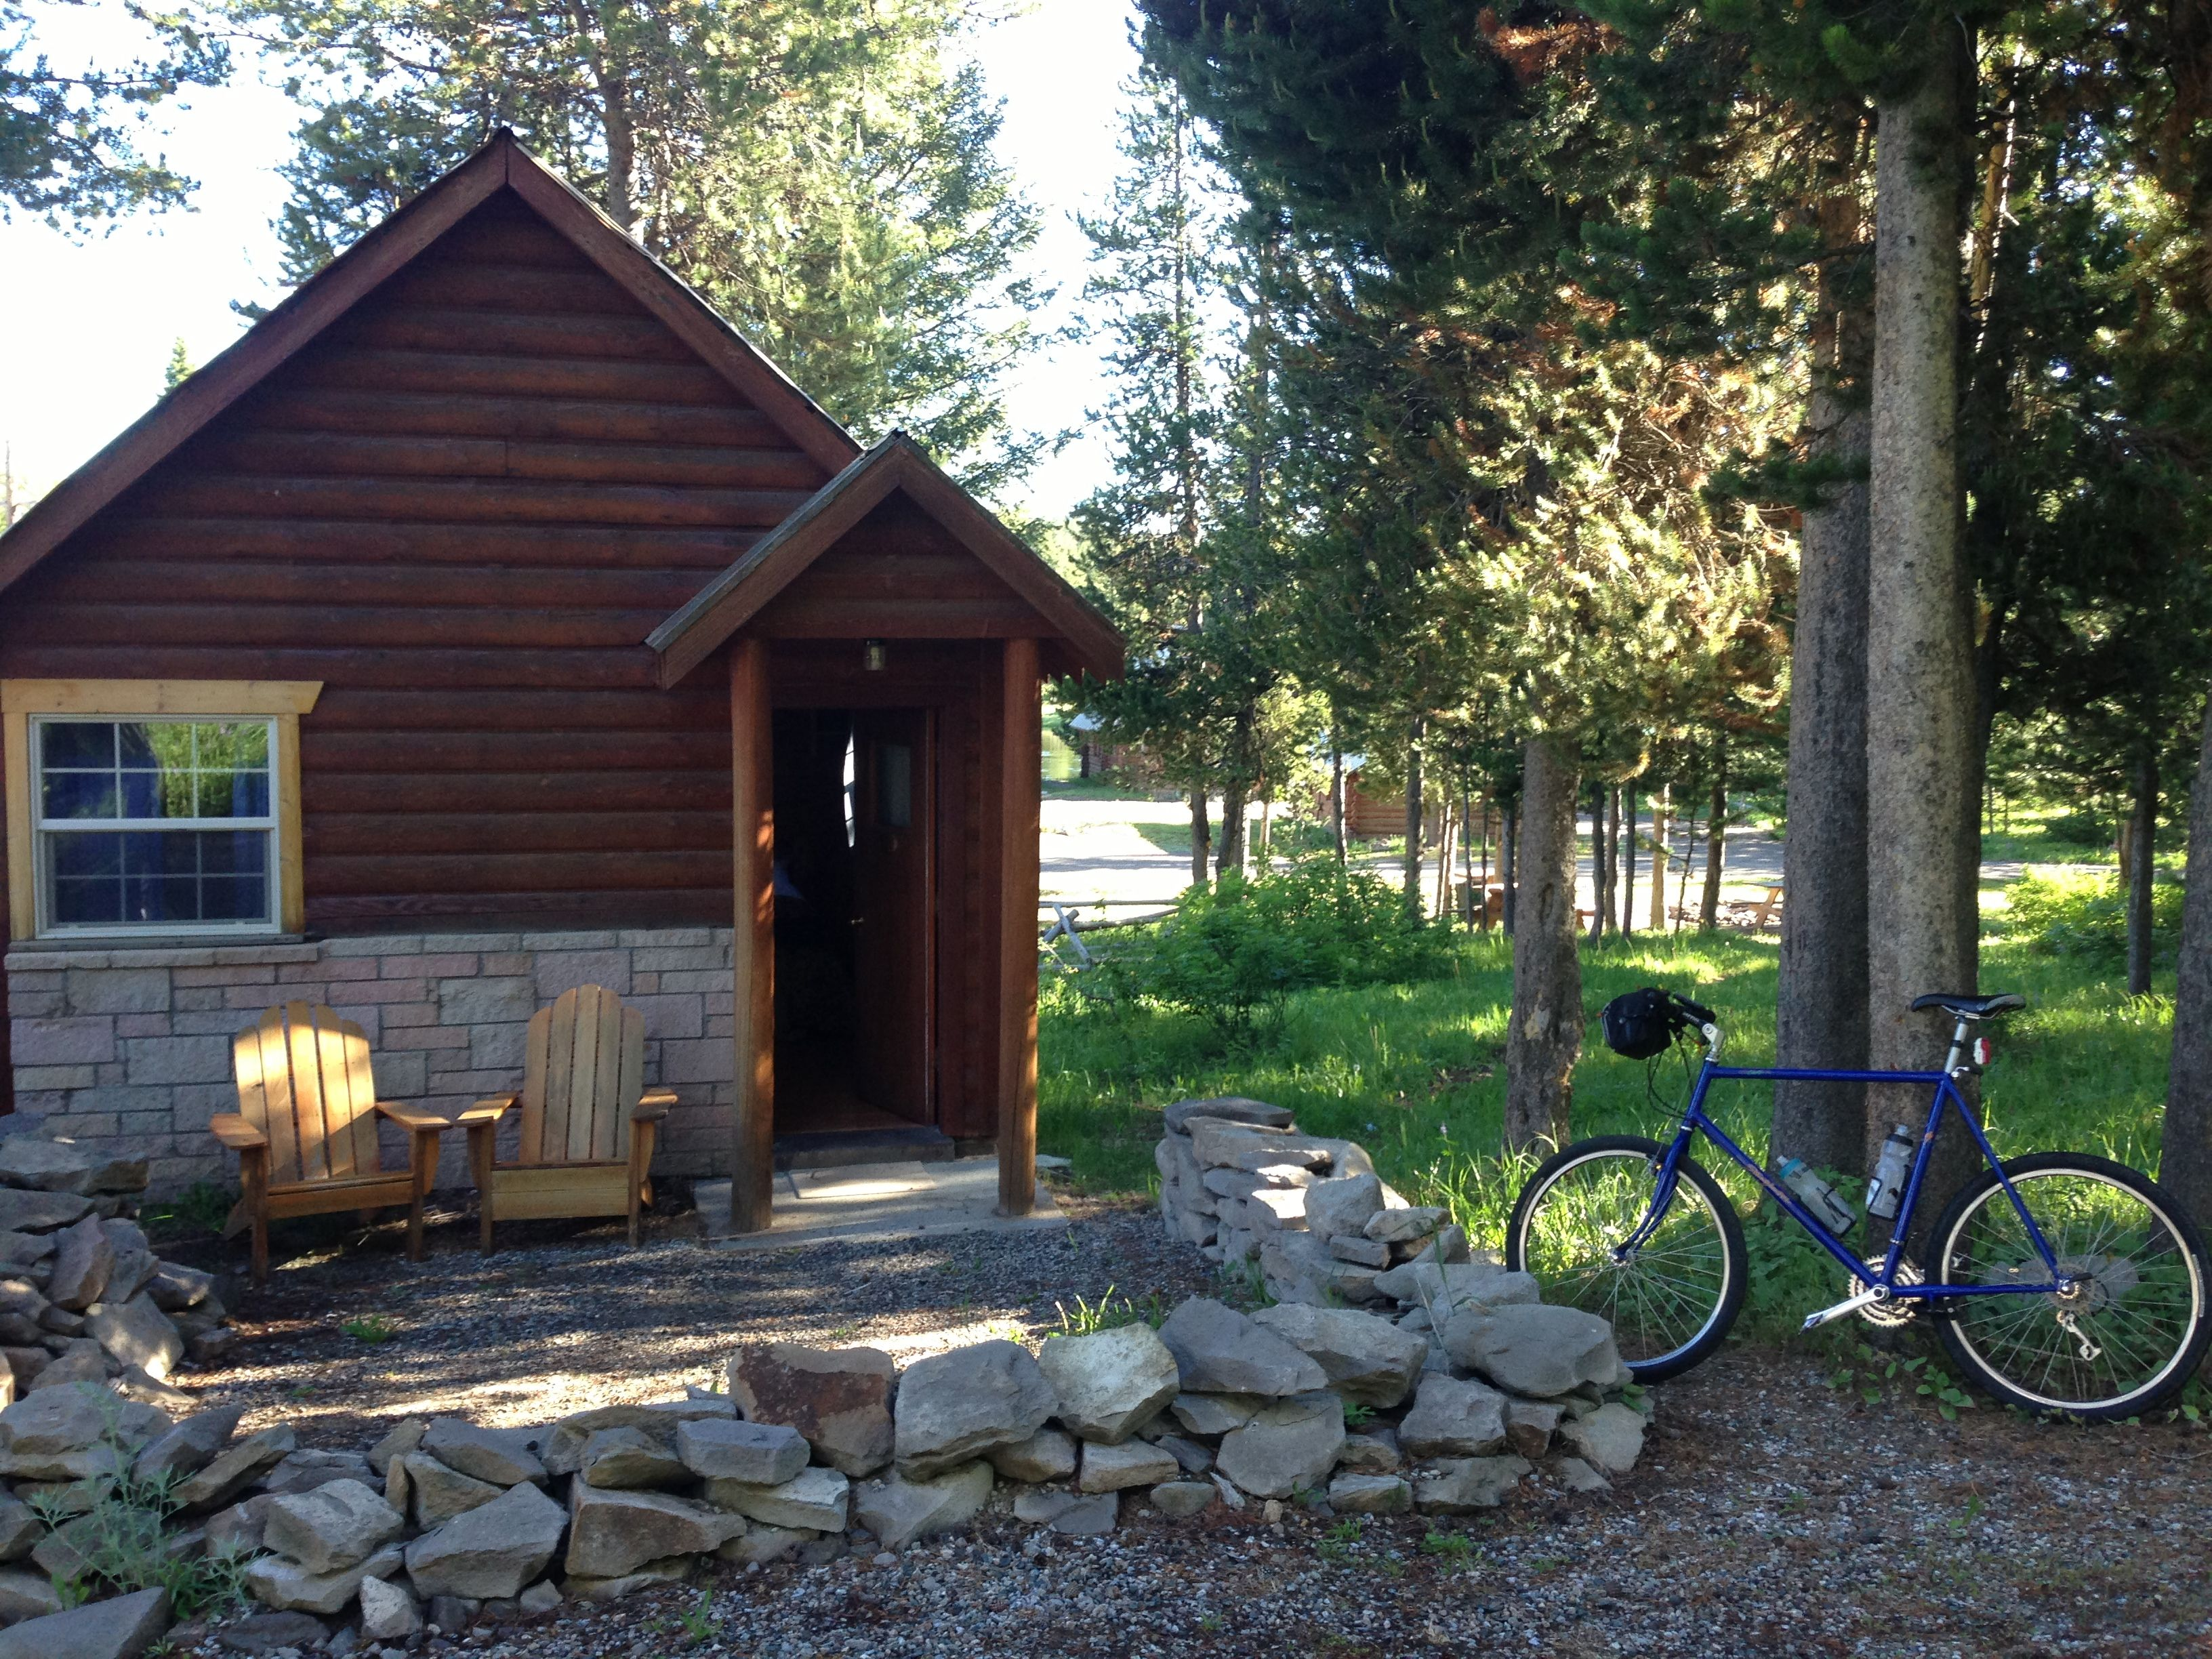 lovely park is idaho of cabins cabin proof and at island in s winter yurts magical luxury rentals beautiful here